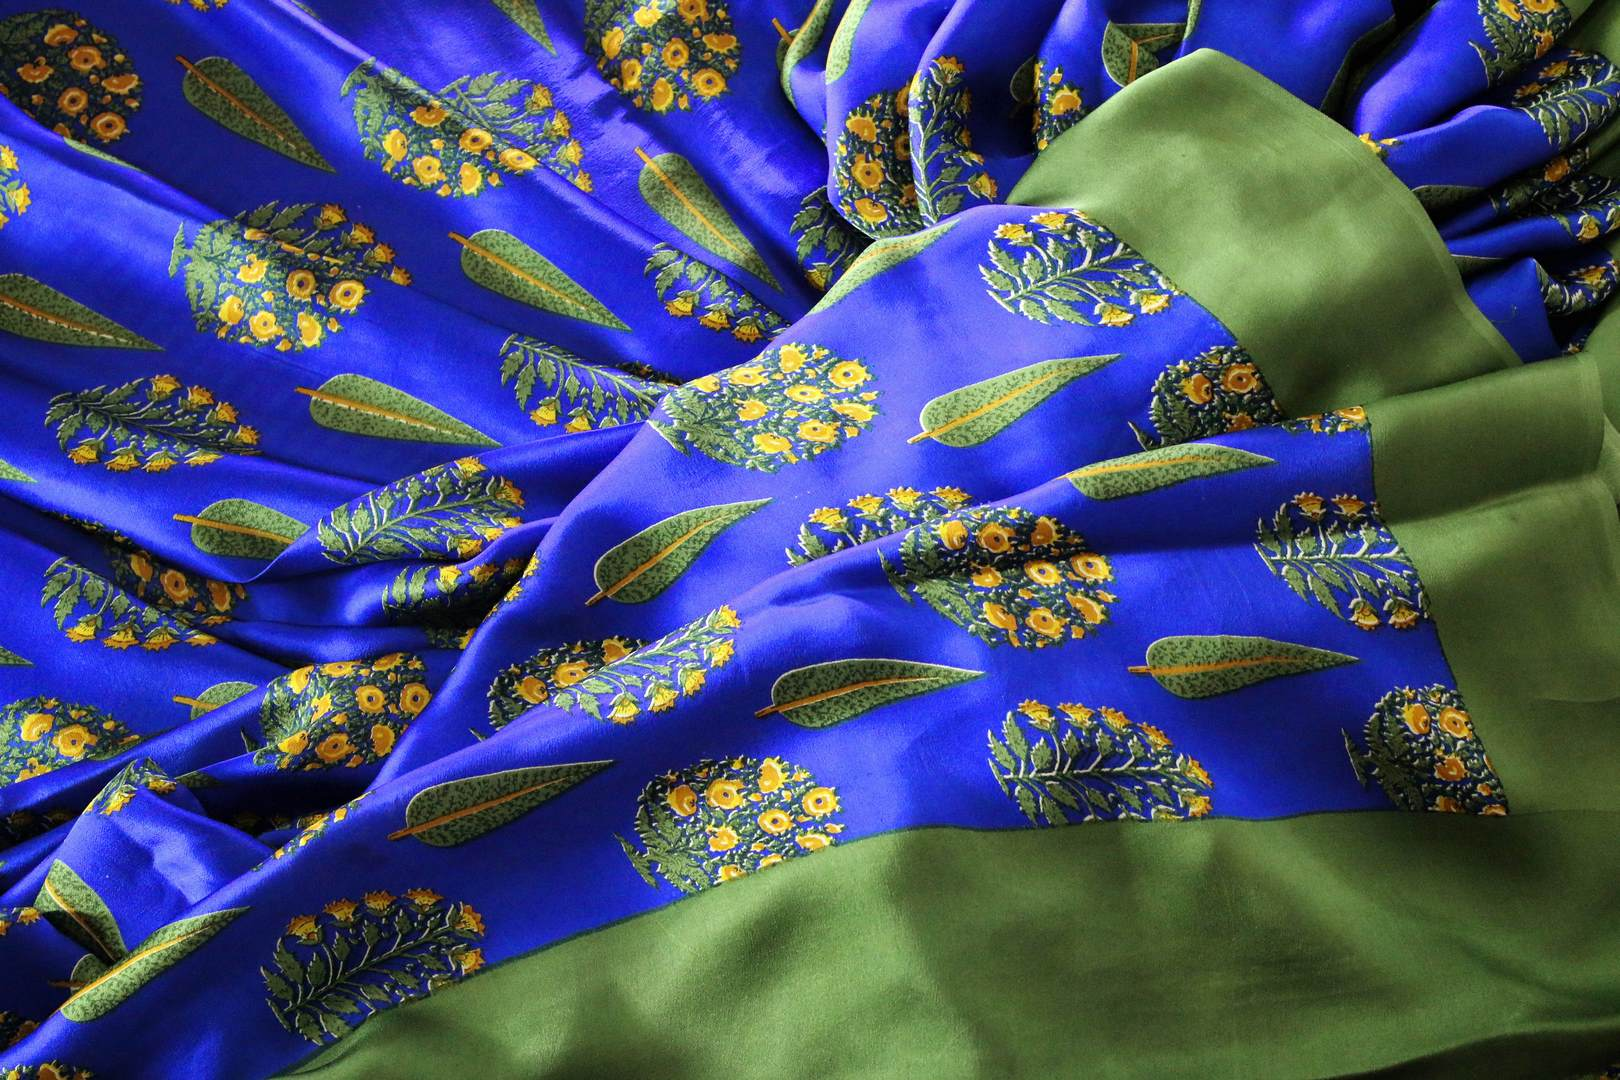 Strike a lasting impression in this handpainted blue floral crepe silk designer sari with stunning green border. The beautiful contrast with the green blouse looks dreamy. Shop unique and beautiful designer silk sarees, satin saris, kanjeevaram silk sarees online or visit Pure Elegance store in USA. -details